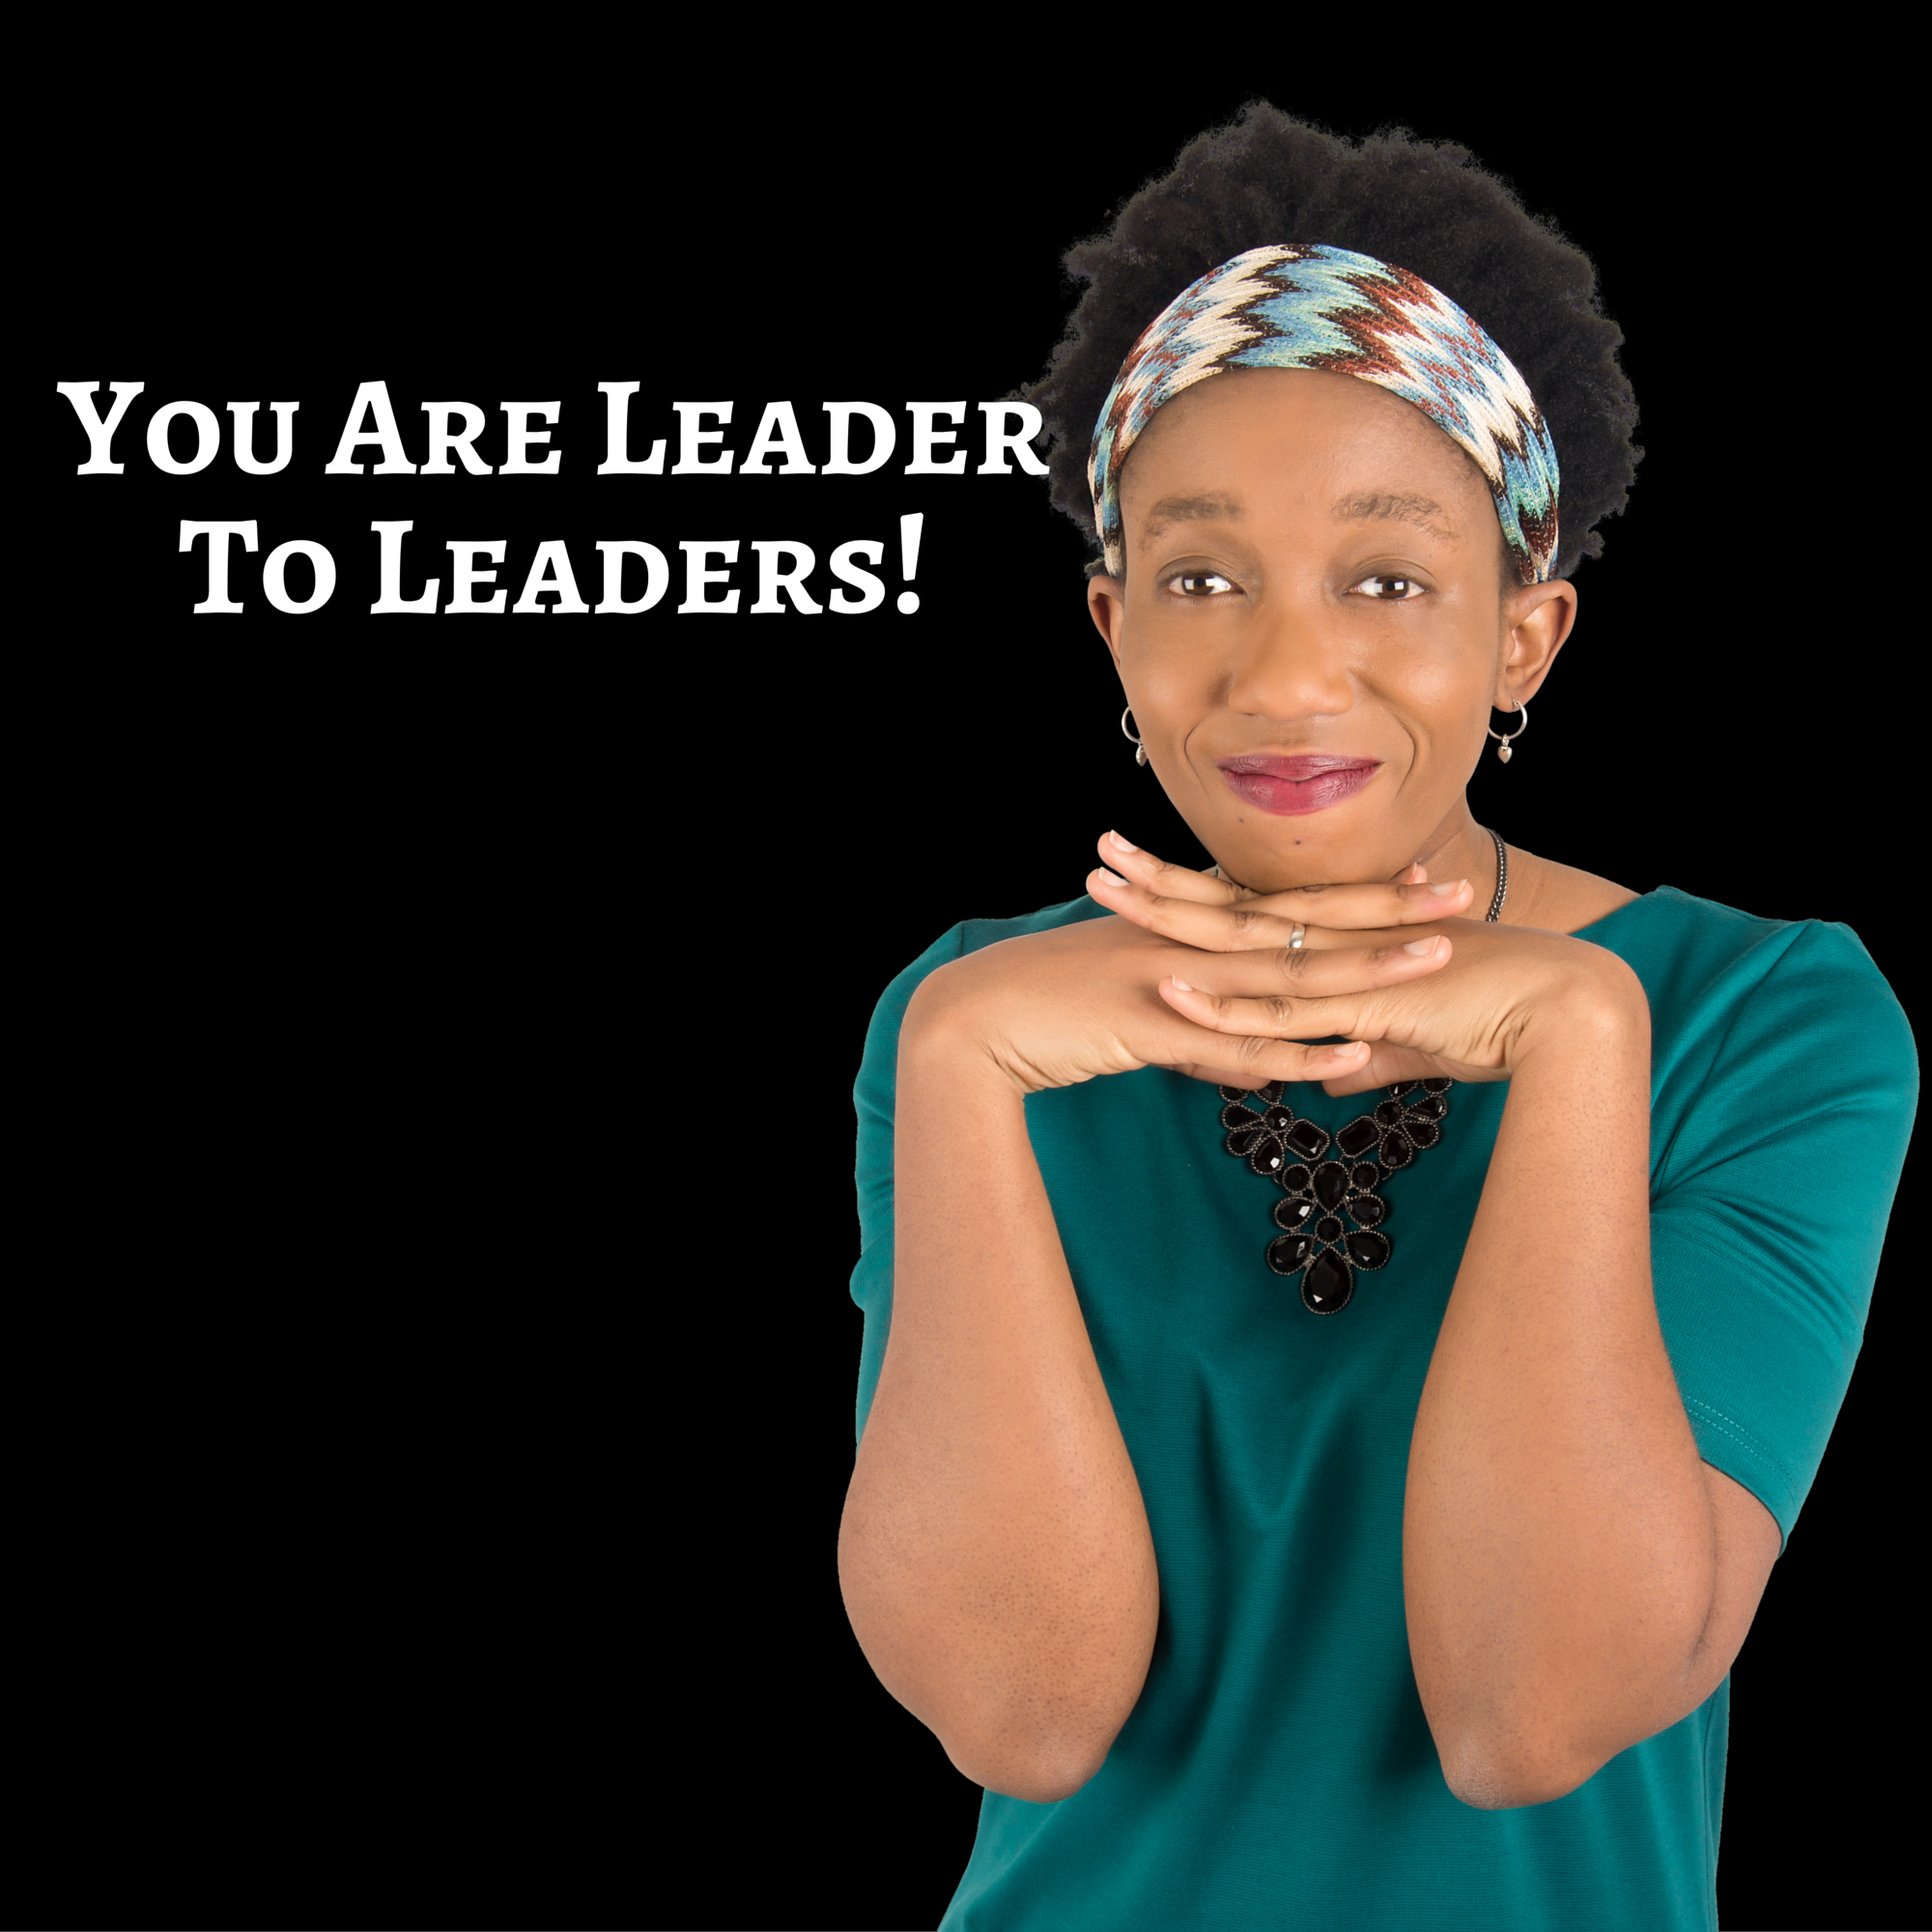 You Are Leader to Leaders